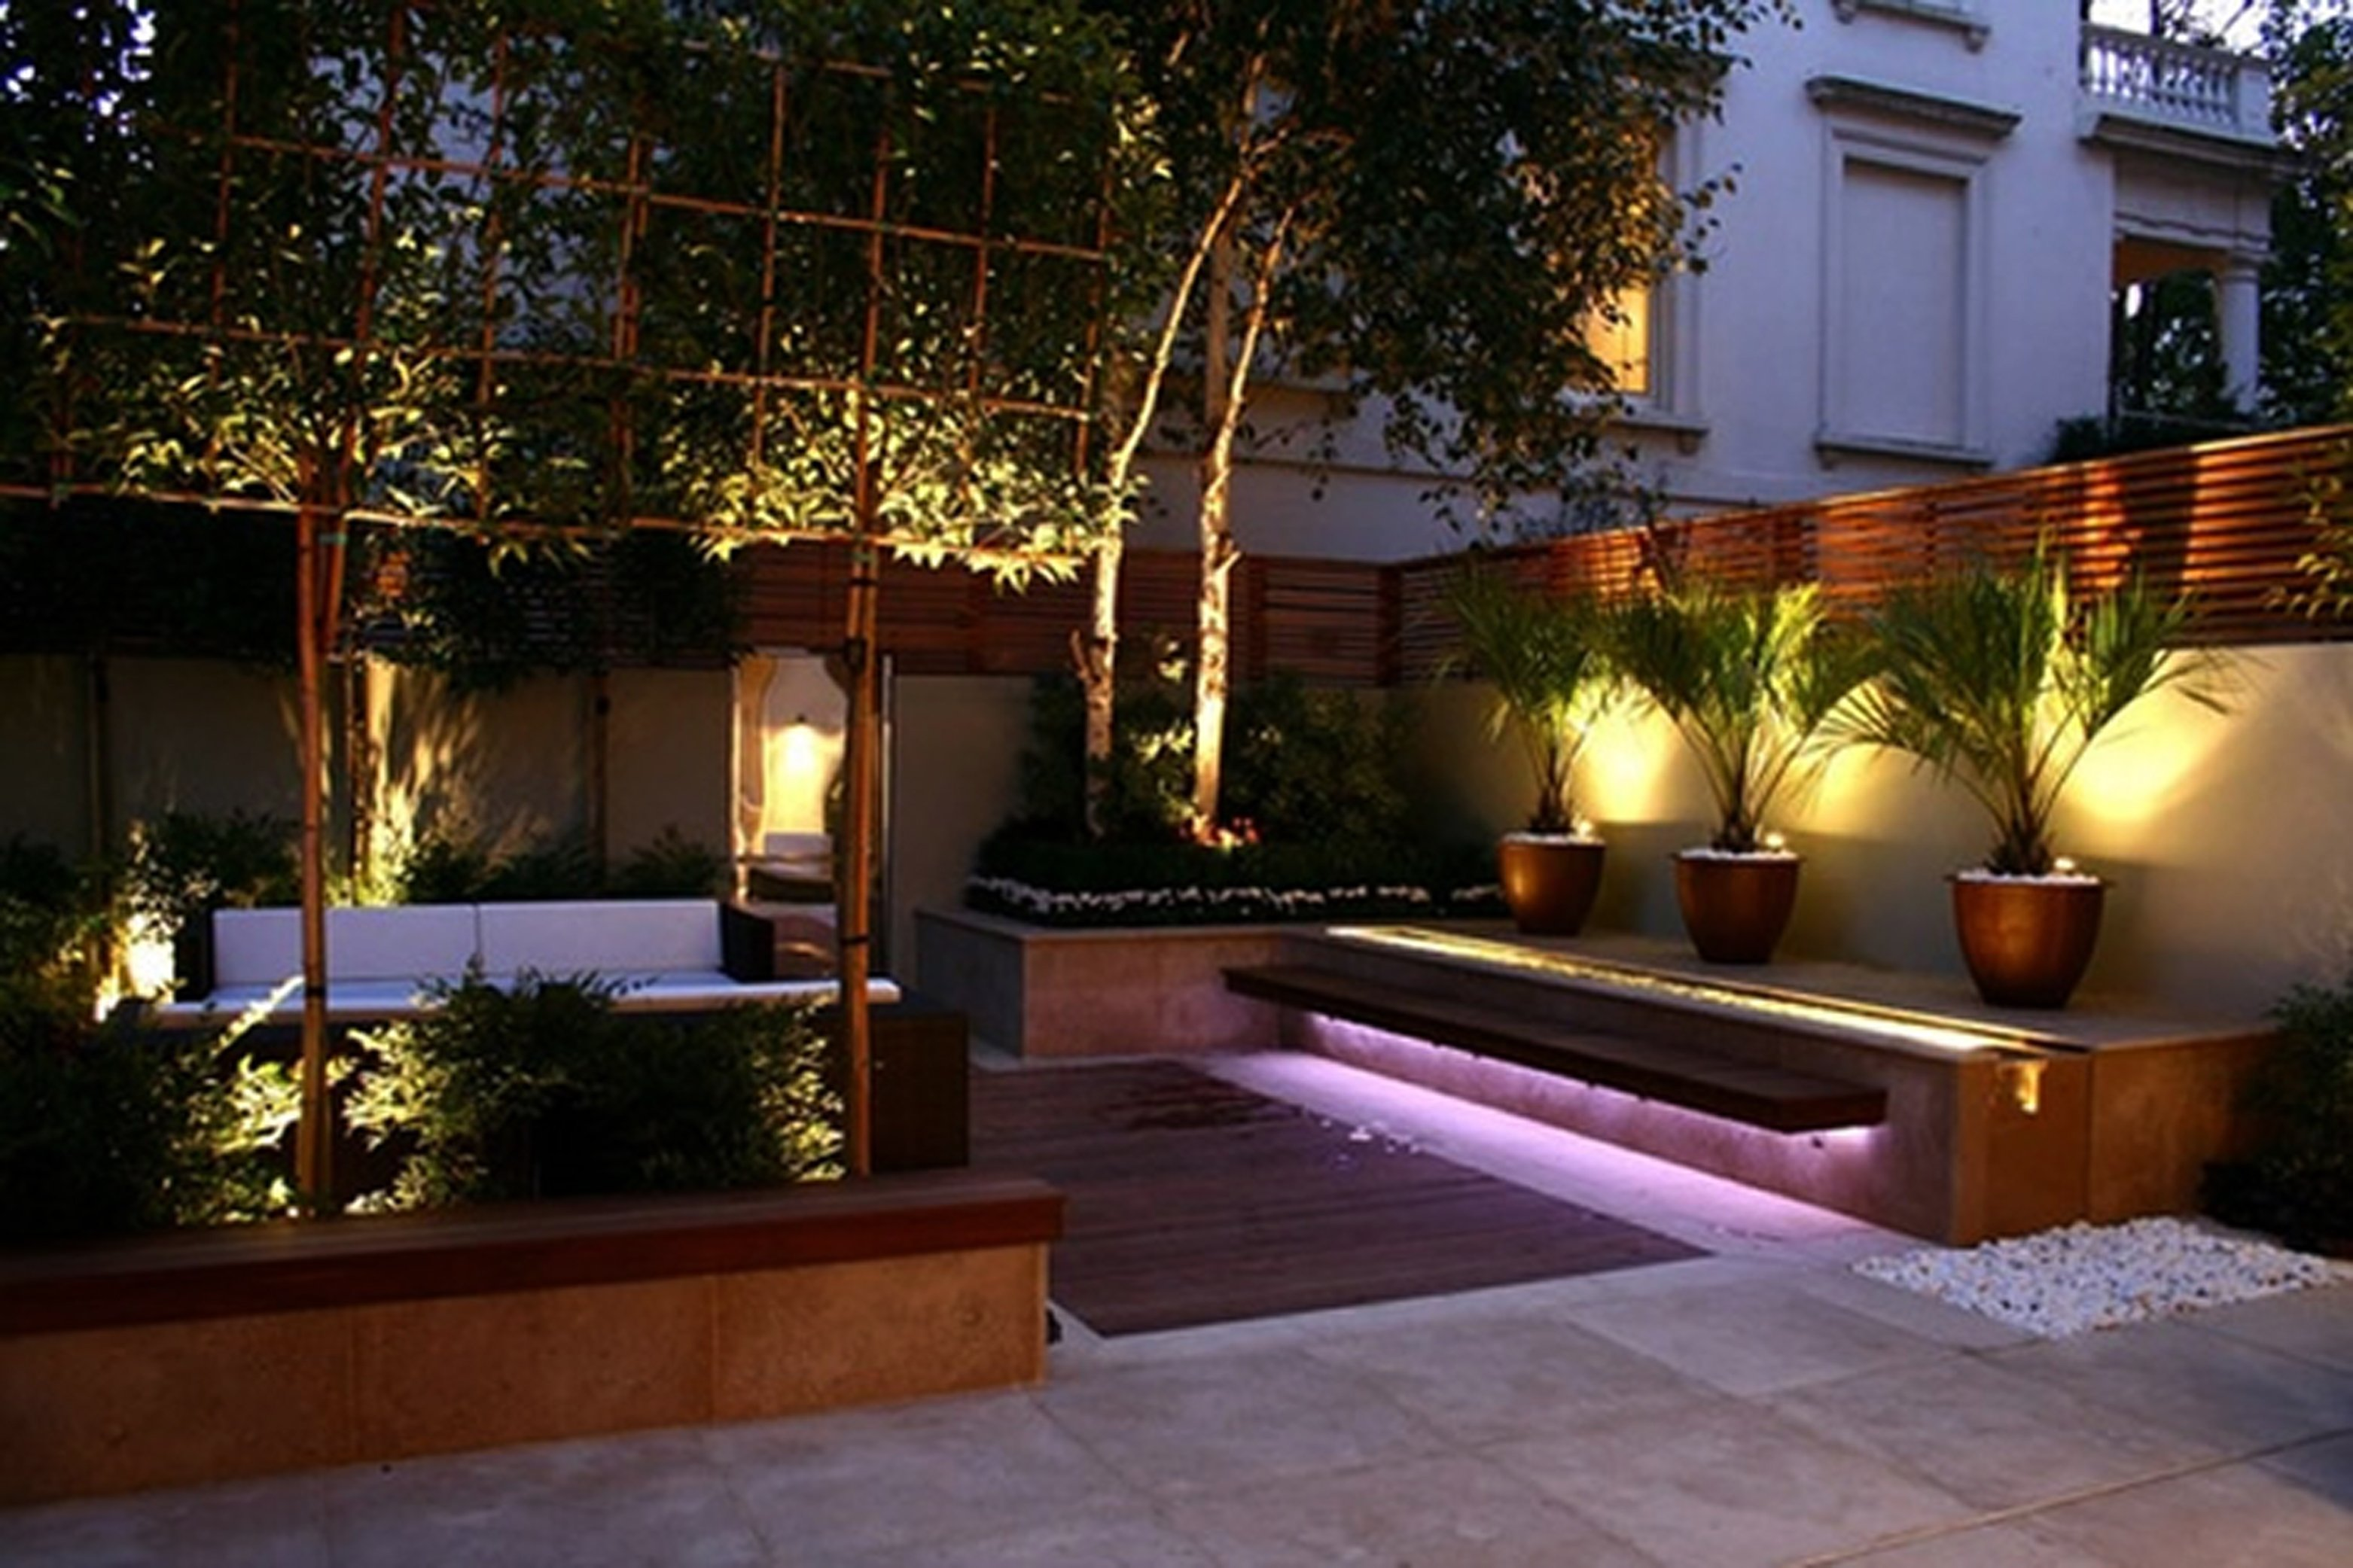 Ideas para decorar exteriores en primavera for Decoracion porches exteriores